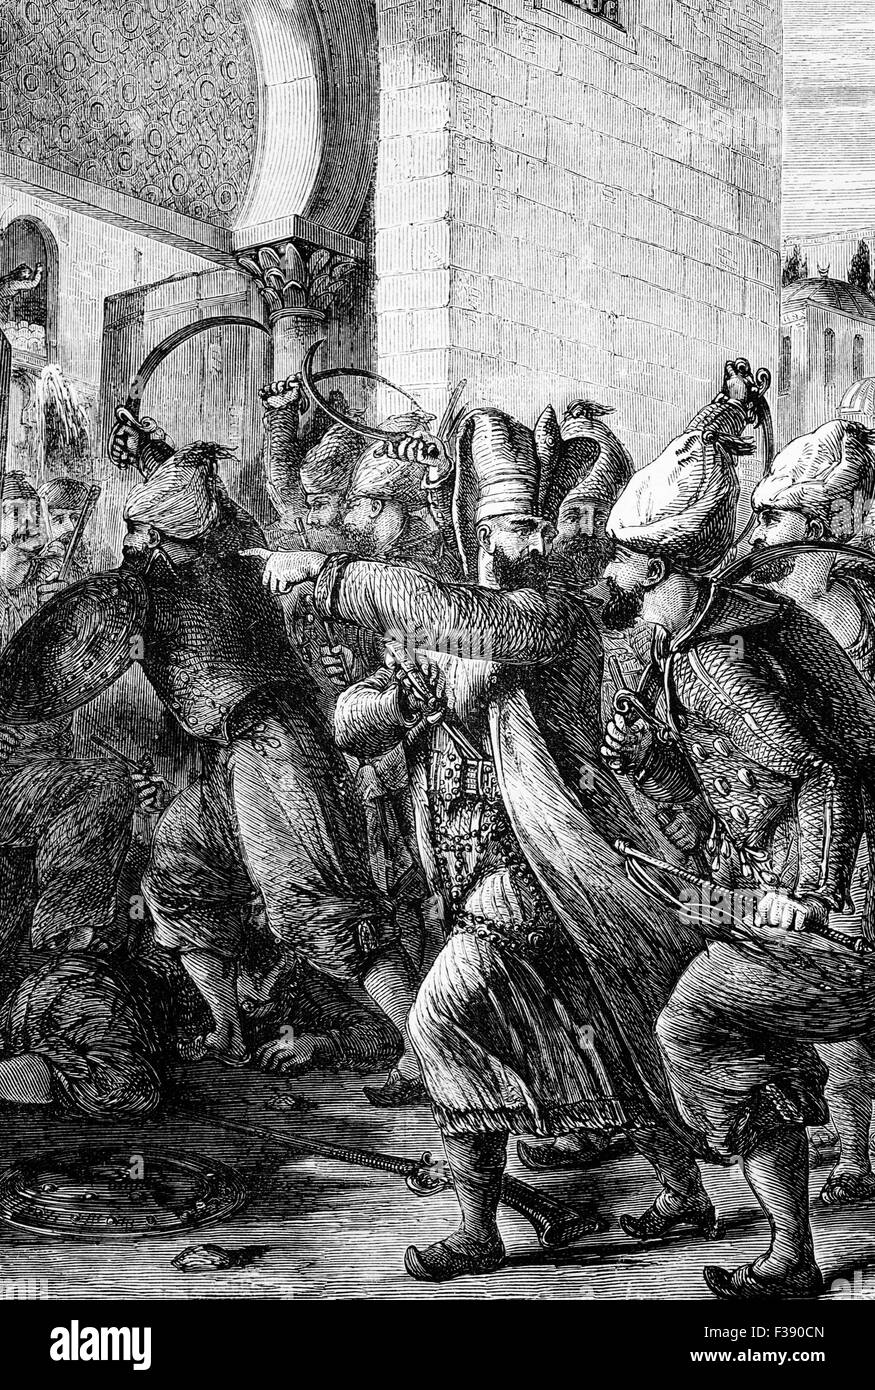 The attack 1807 on the Seraglio and Palace in Constantinople by the Chief Black Eunuch named Nezir Ağa and his men, Stock Photo